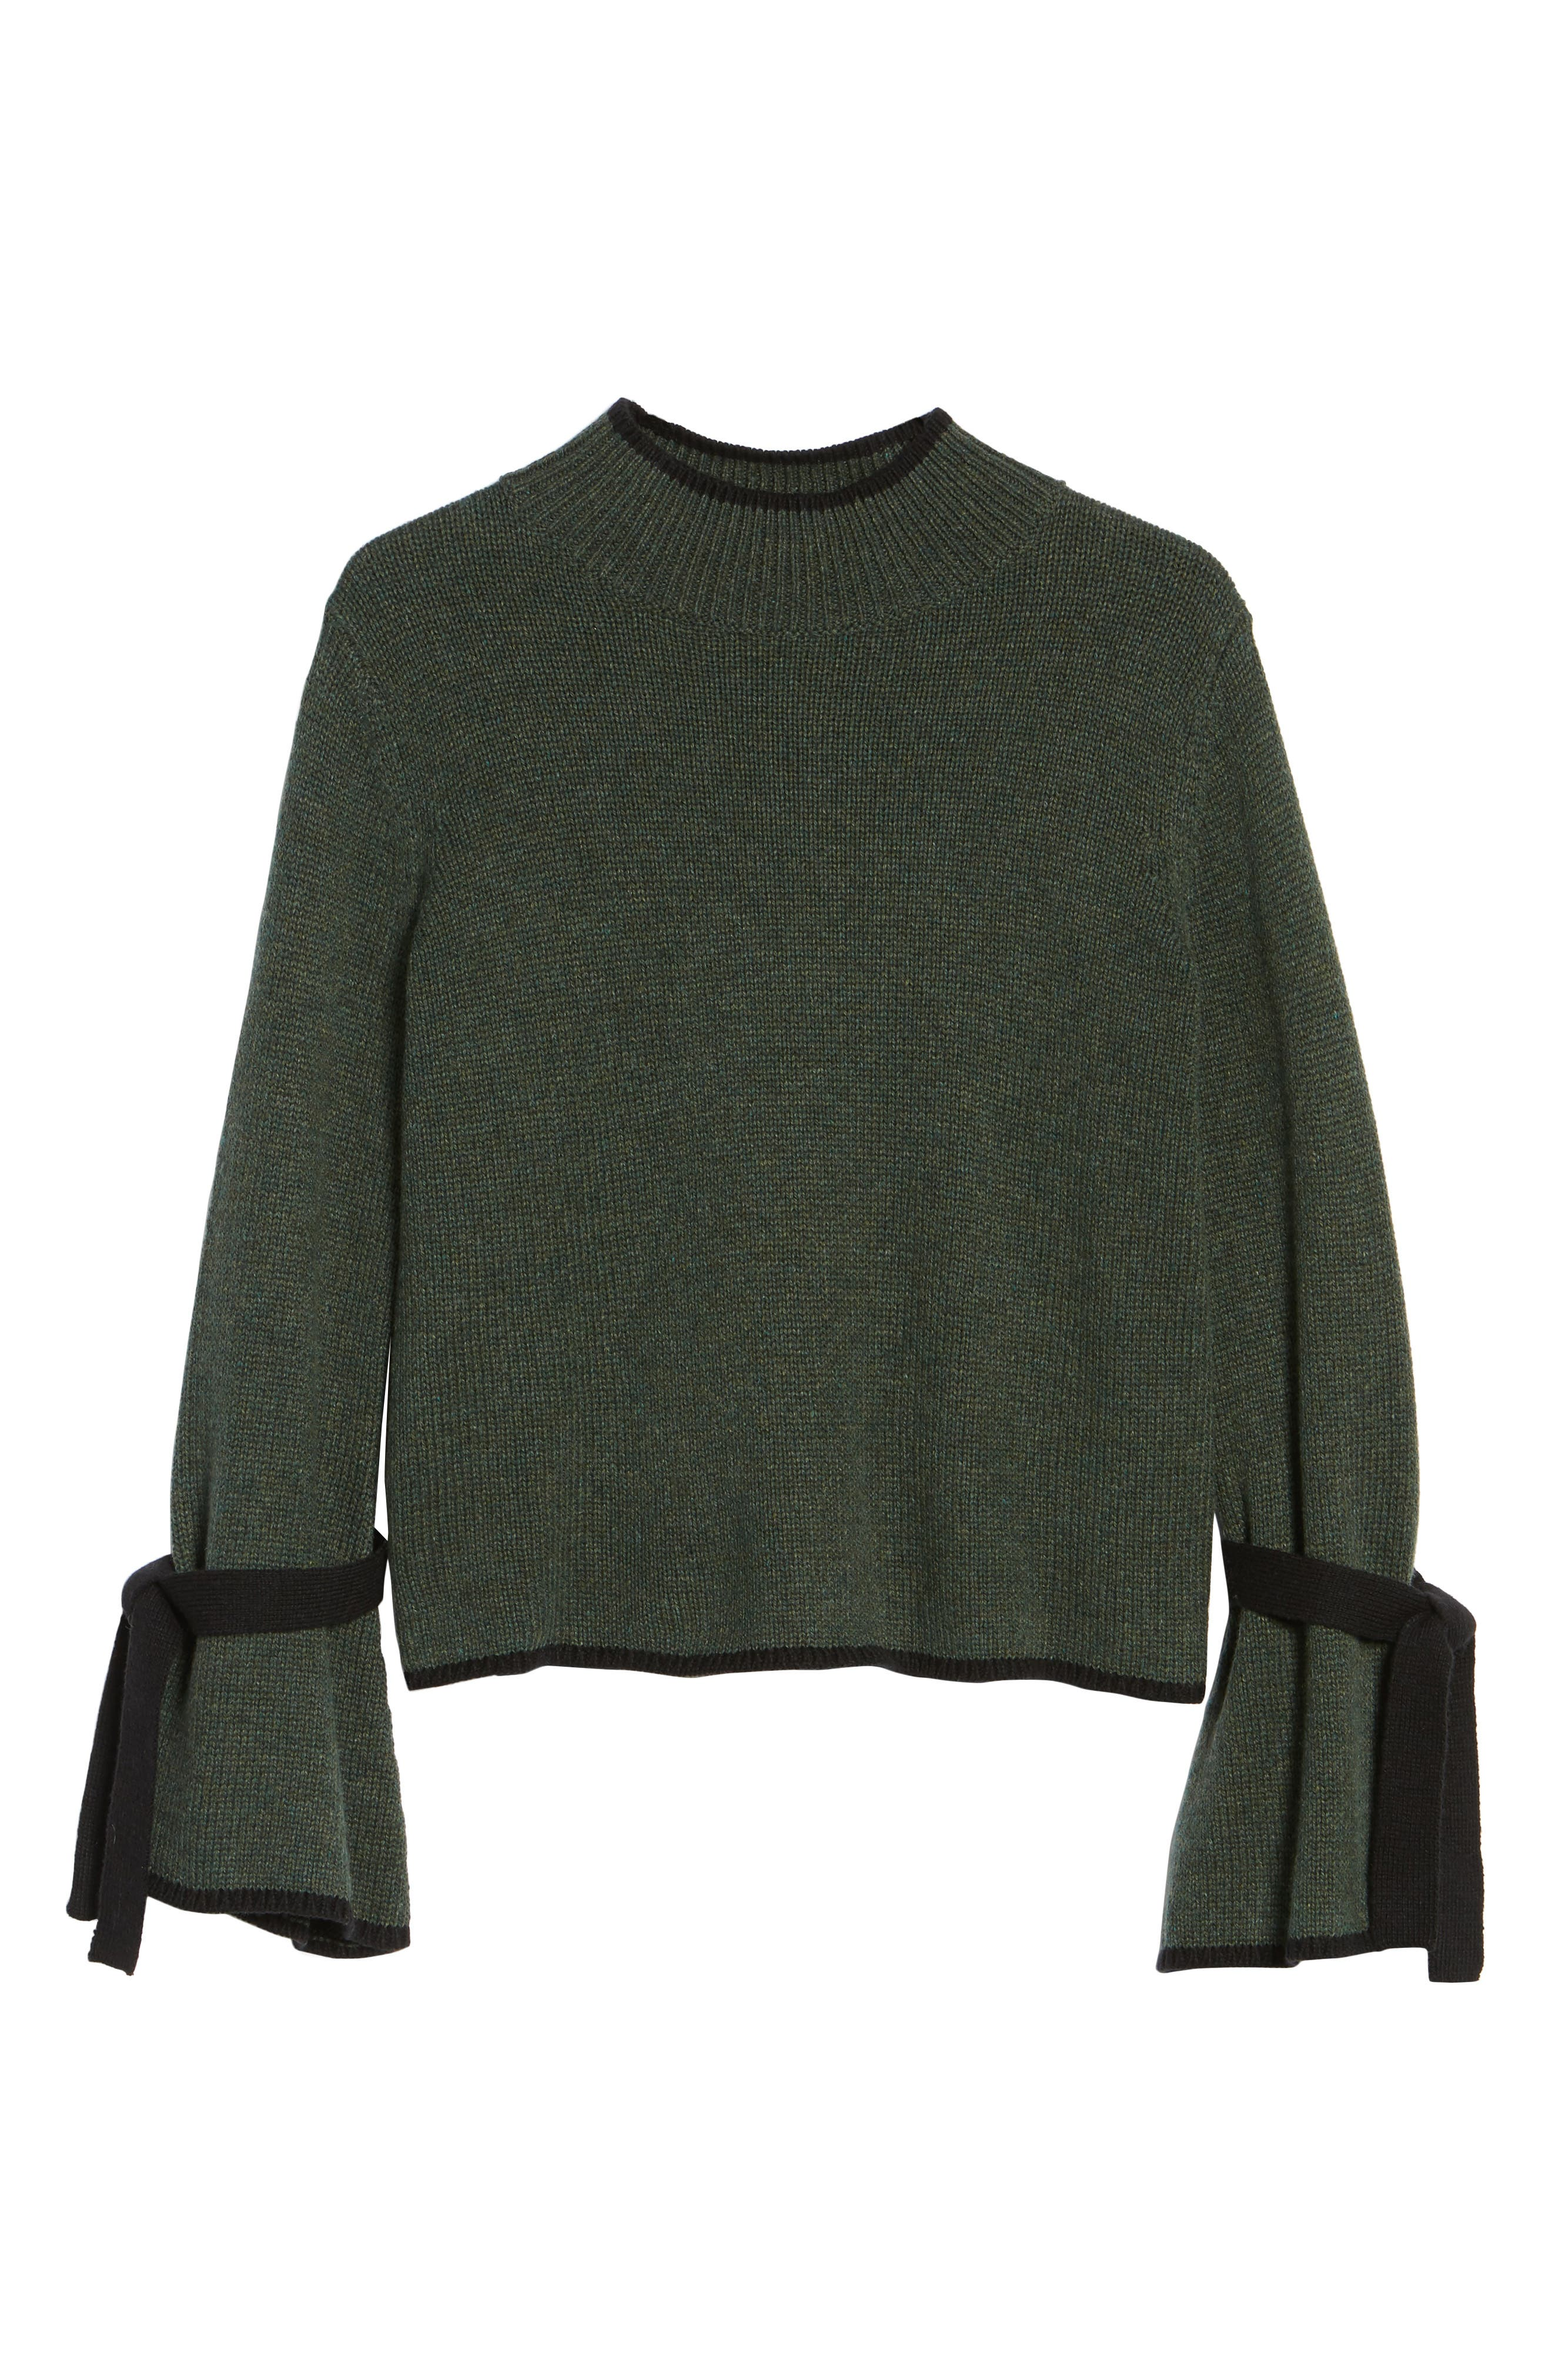 Tie Sleeve Sweater,                             Alternate thumbnail 6, color,                             Green Wood